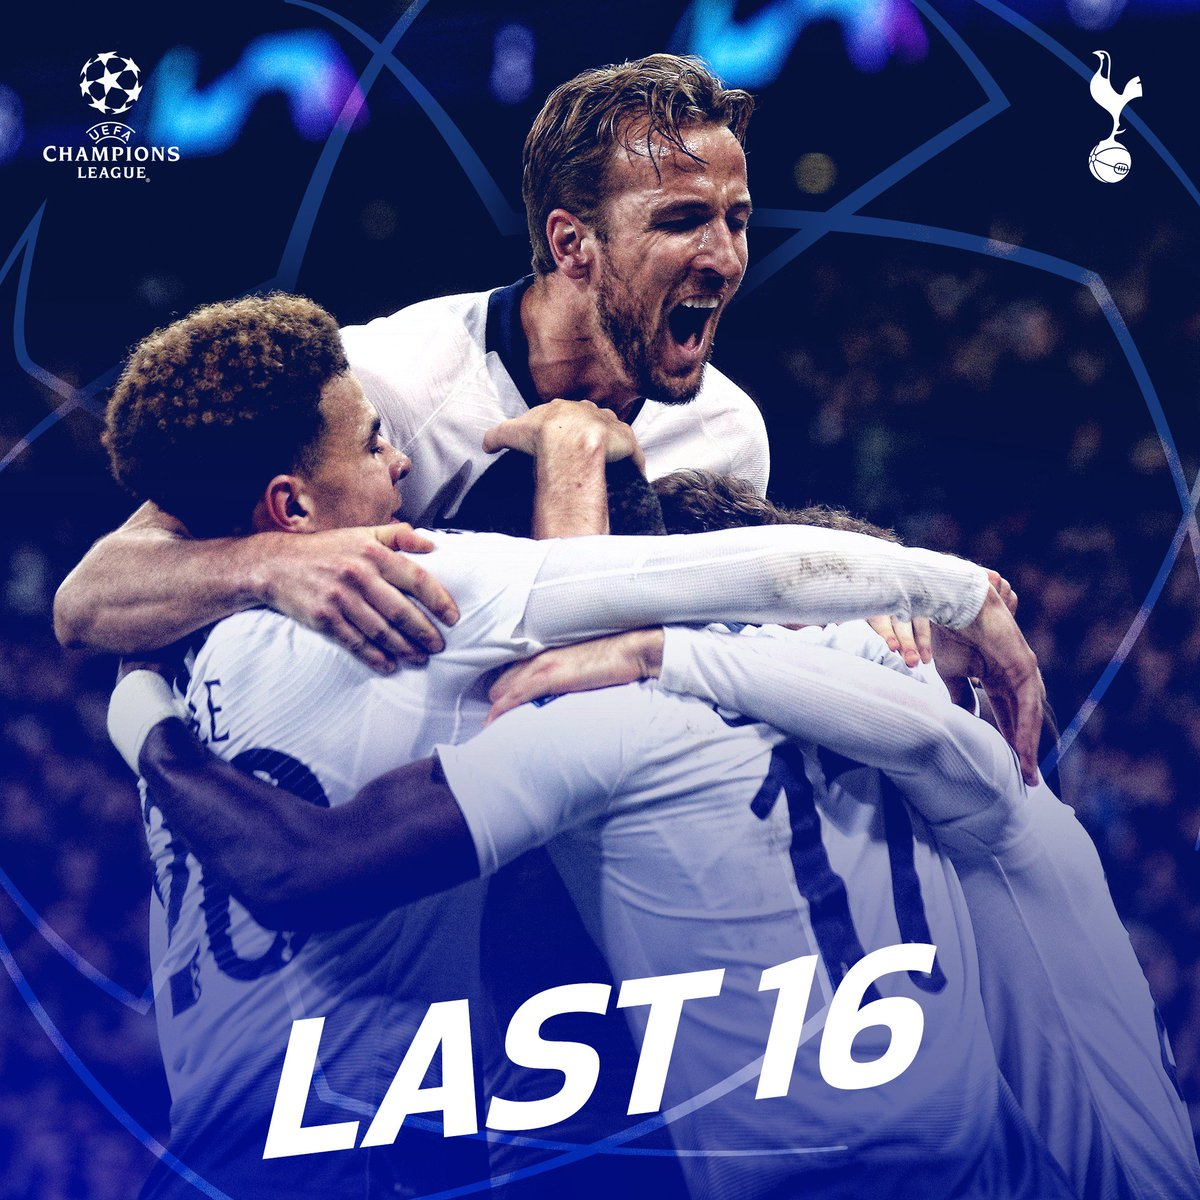 YES! YES! YES!   @ChampionsLeague Last 16, we're coming!   #COYS